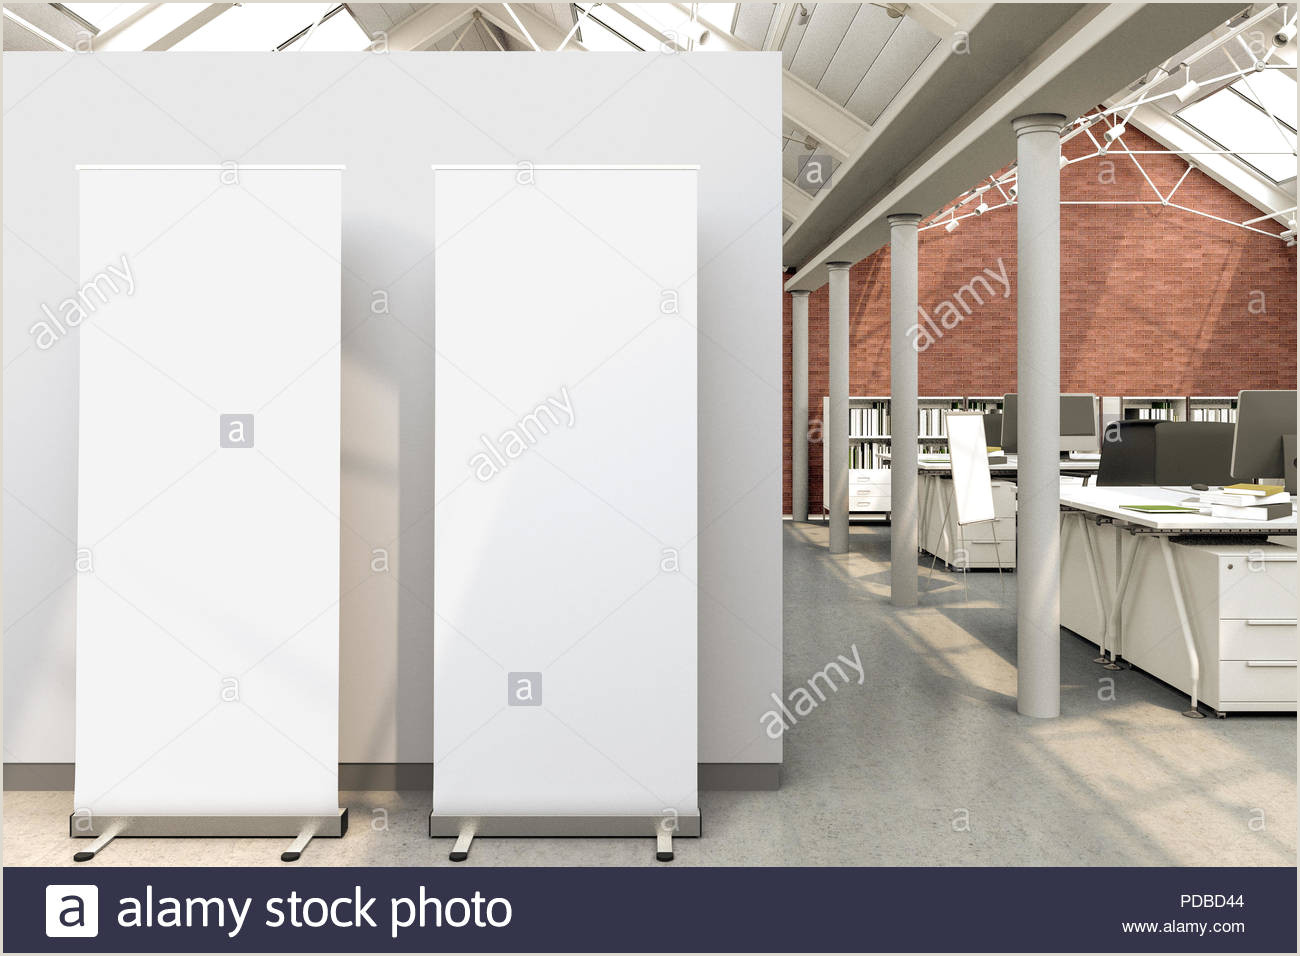 Floor Banners Retractable Blank Roll Up Banner Stands In Loft Office With Clipping